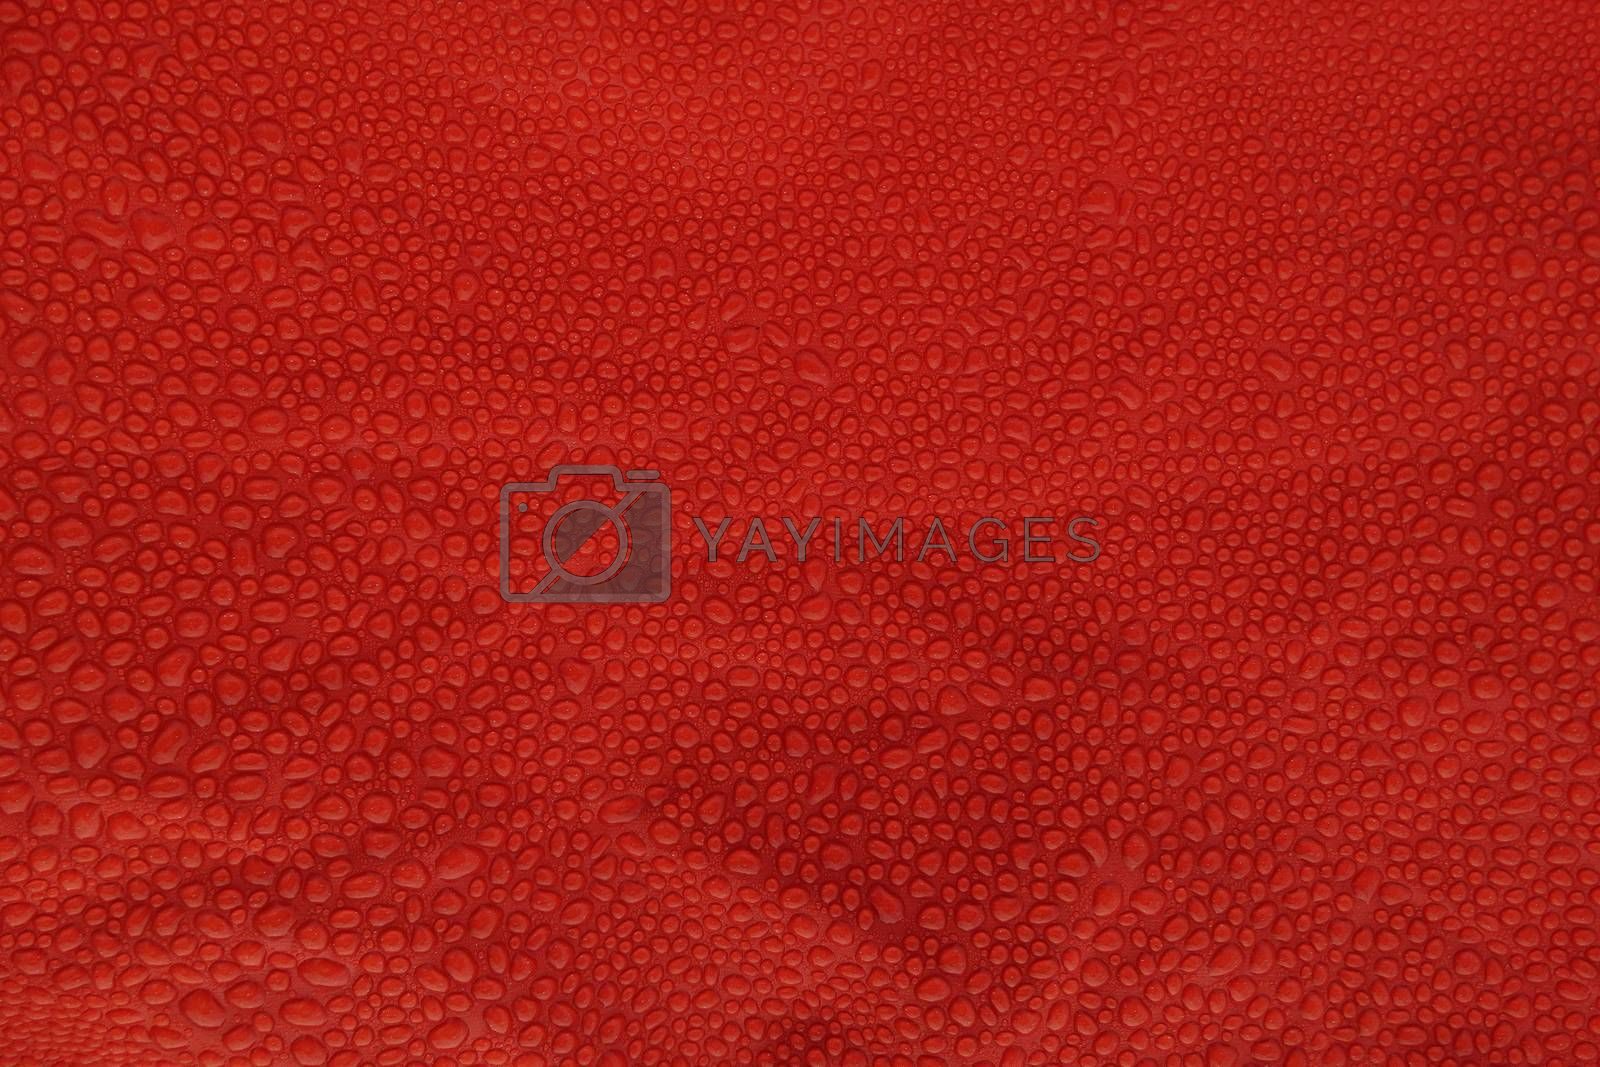 Waterdrops texture on red canvas by shoricelu